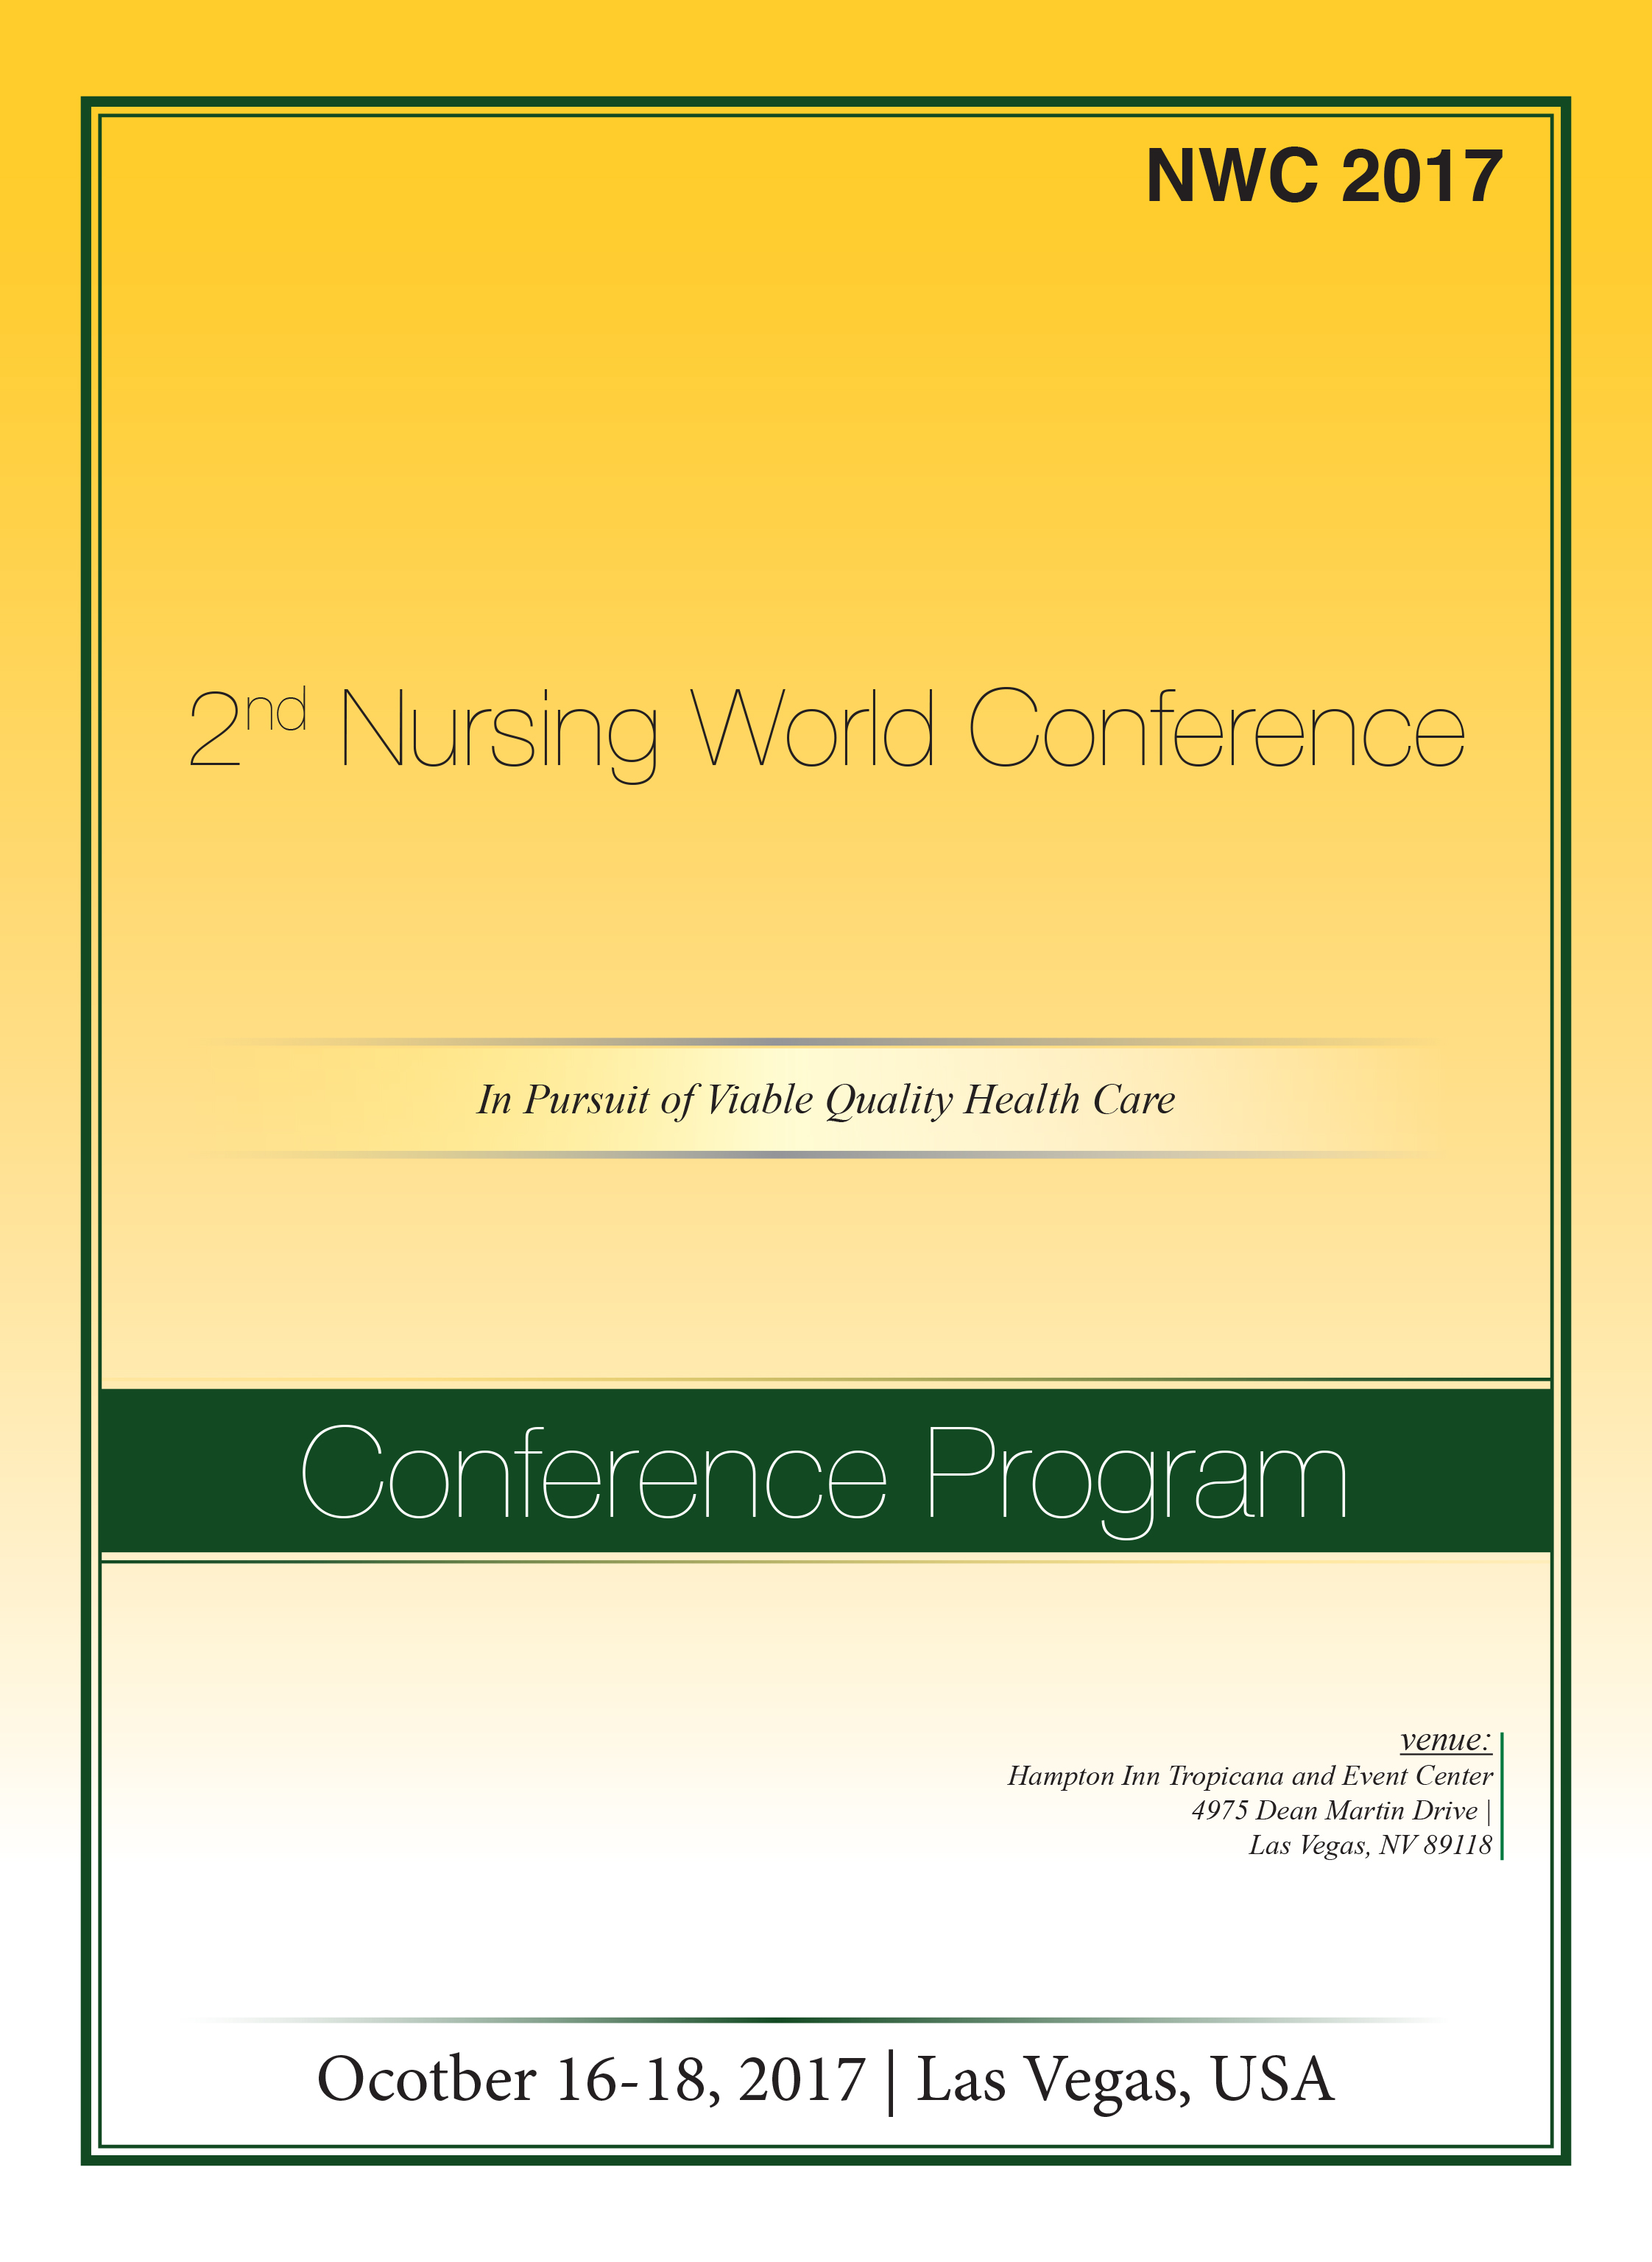 2nd Nursing World Conference | Las Vegas, USA Program